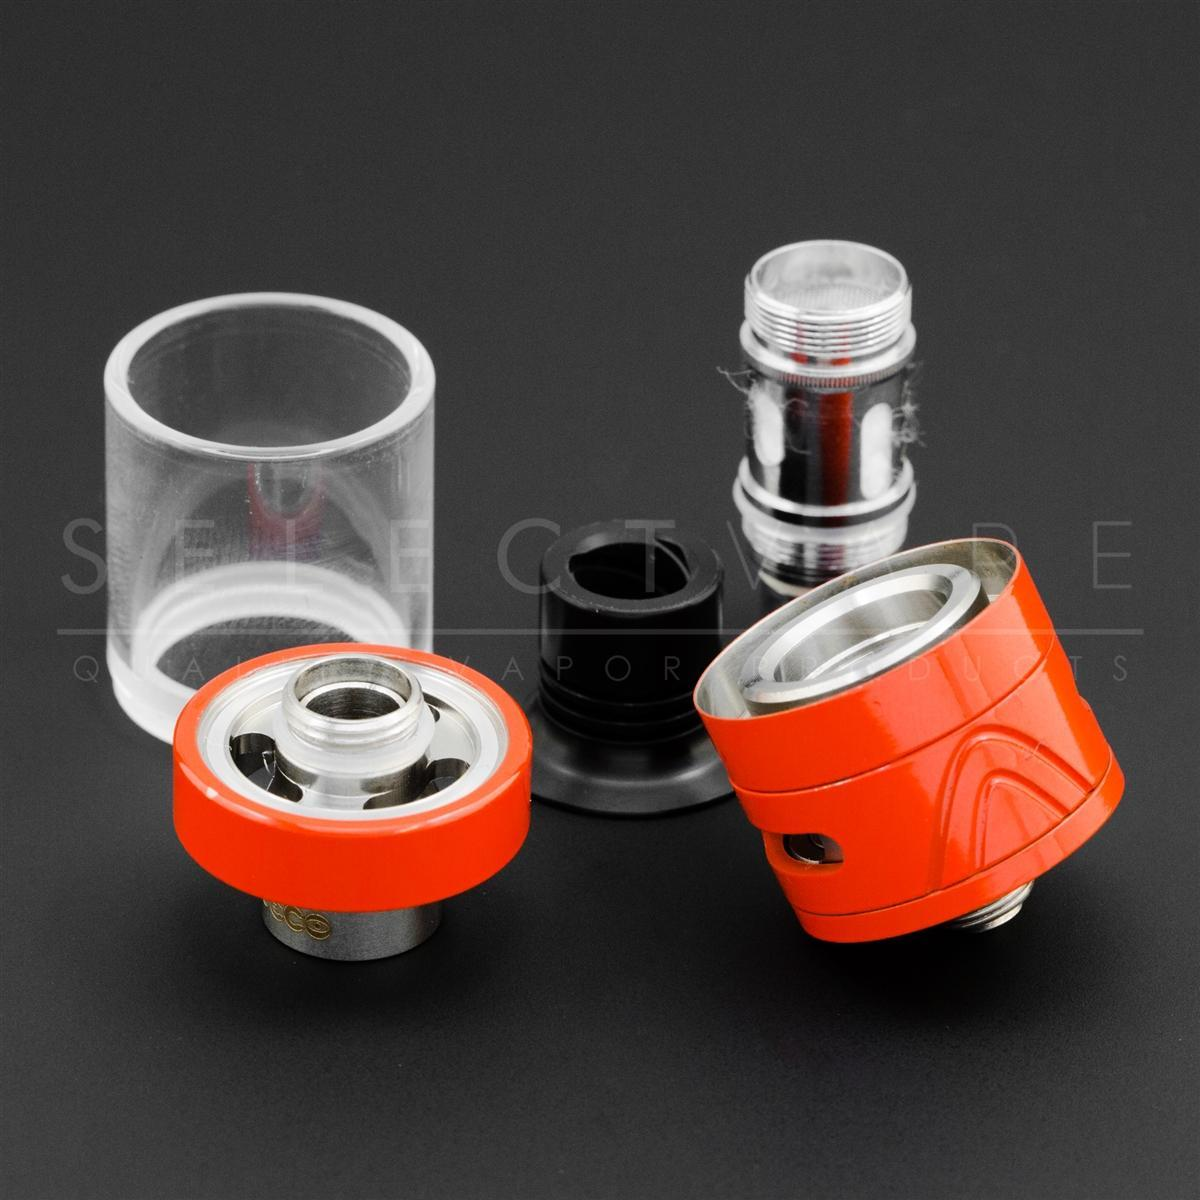 Super Tank Mini - Red (Tobeco)